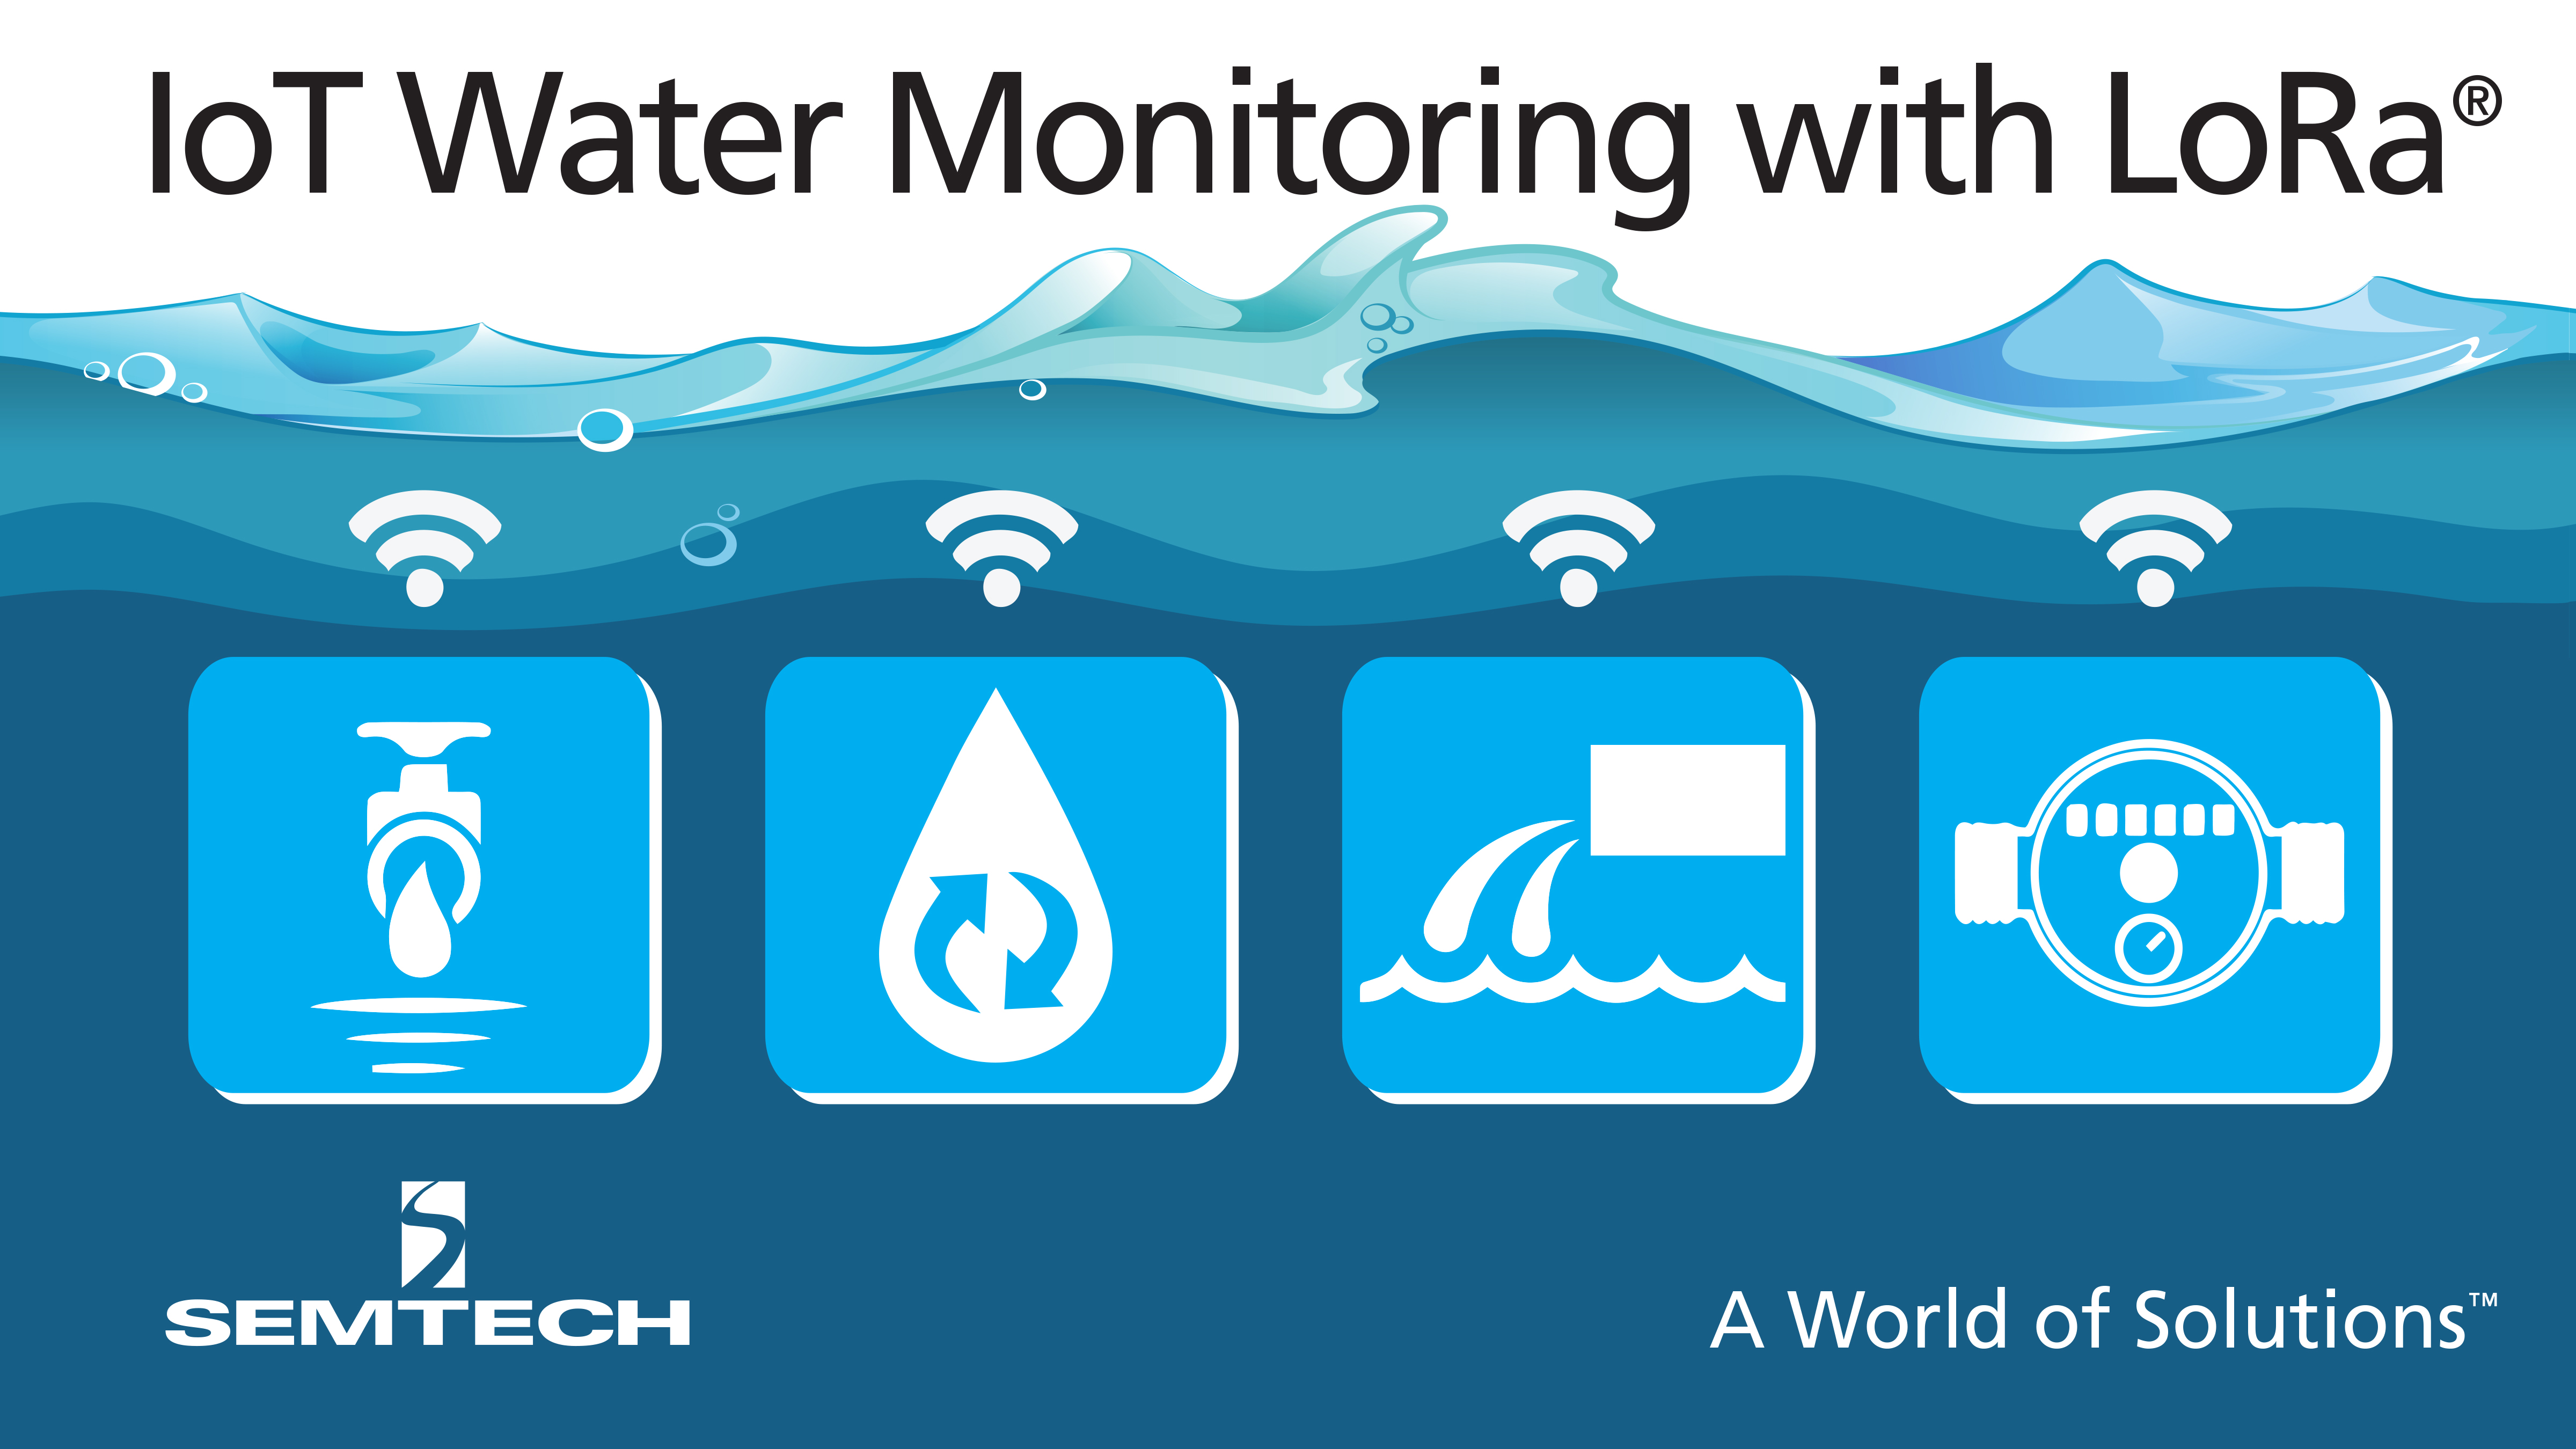 Semtech Lora Technology Used By Trimble For Iot Water